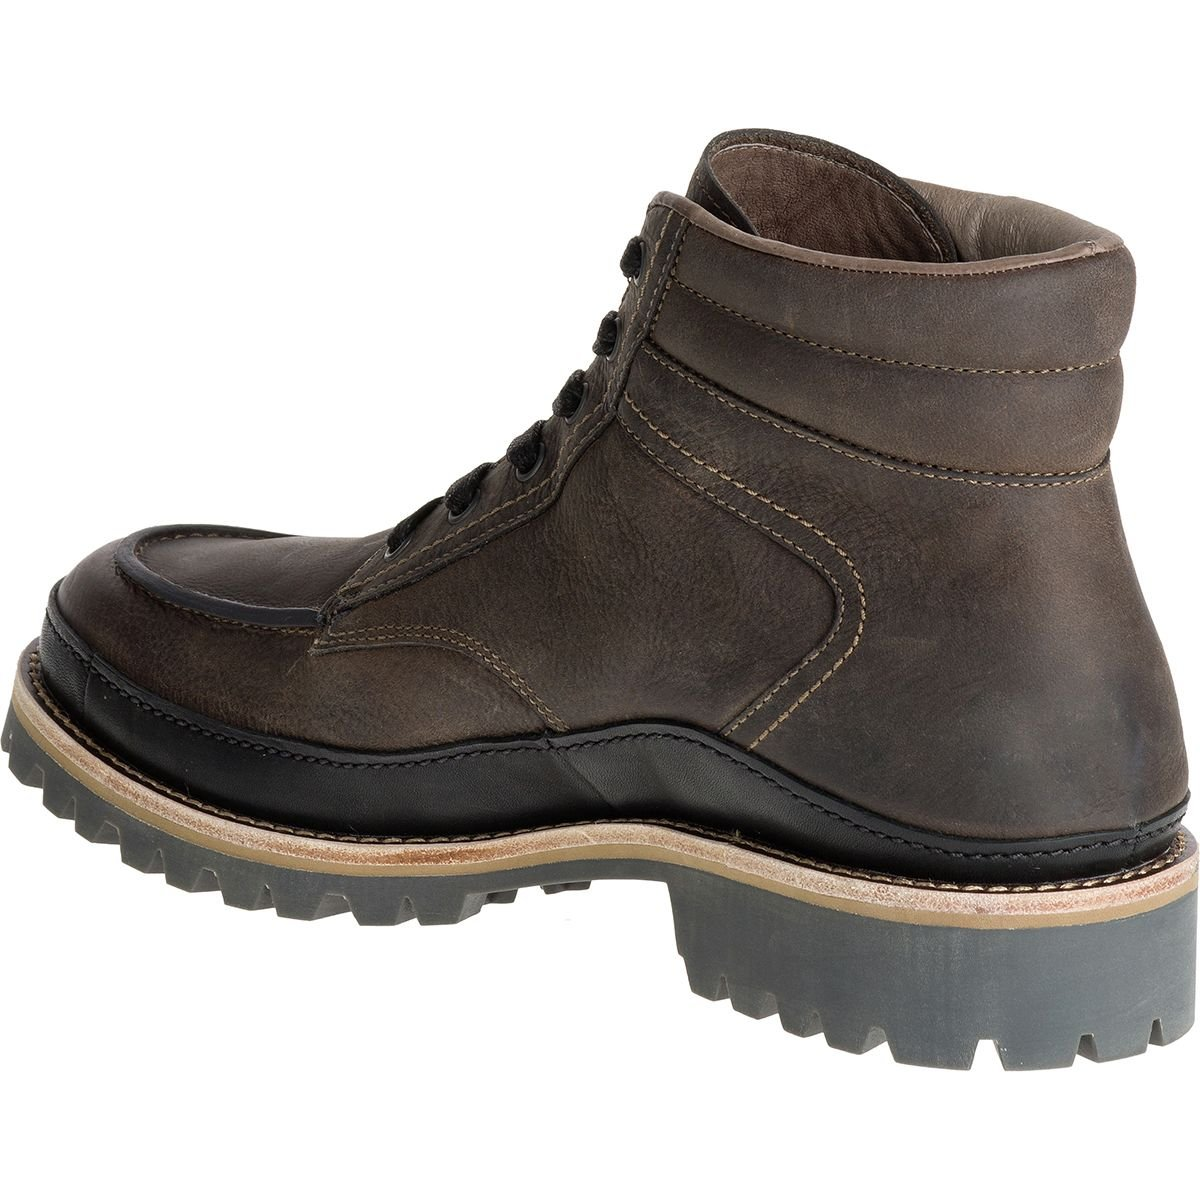 Chaco Men's Yonder-M Boot, Fossil, 11.5 M US by Chaco (Image #3)